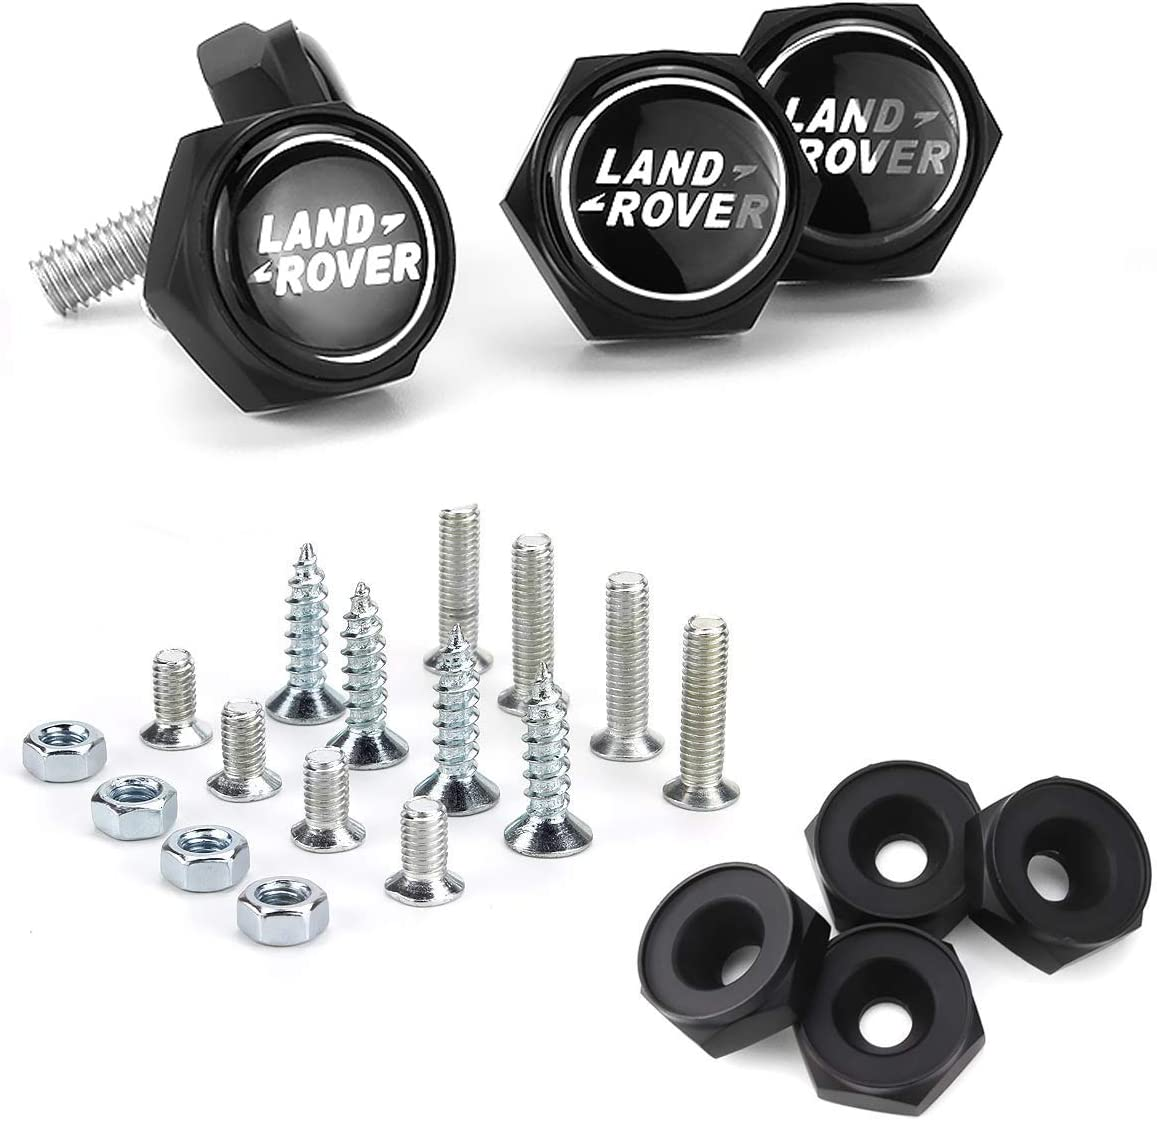 Land Rover Logo Cap Cover Metal Screw Bolts Nuts Anti-Theft Universal Car Truck Accessories fits for Land Rover Black, Black Nuts Bettway 4pcs//Set Car License Plate Frame Screw Bolts